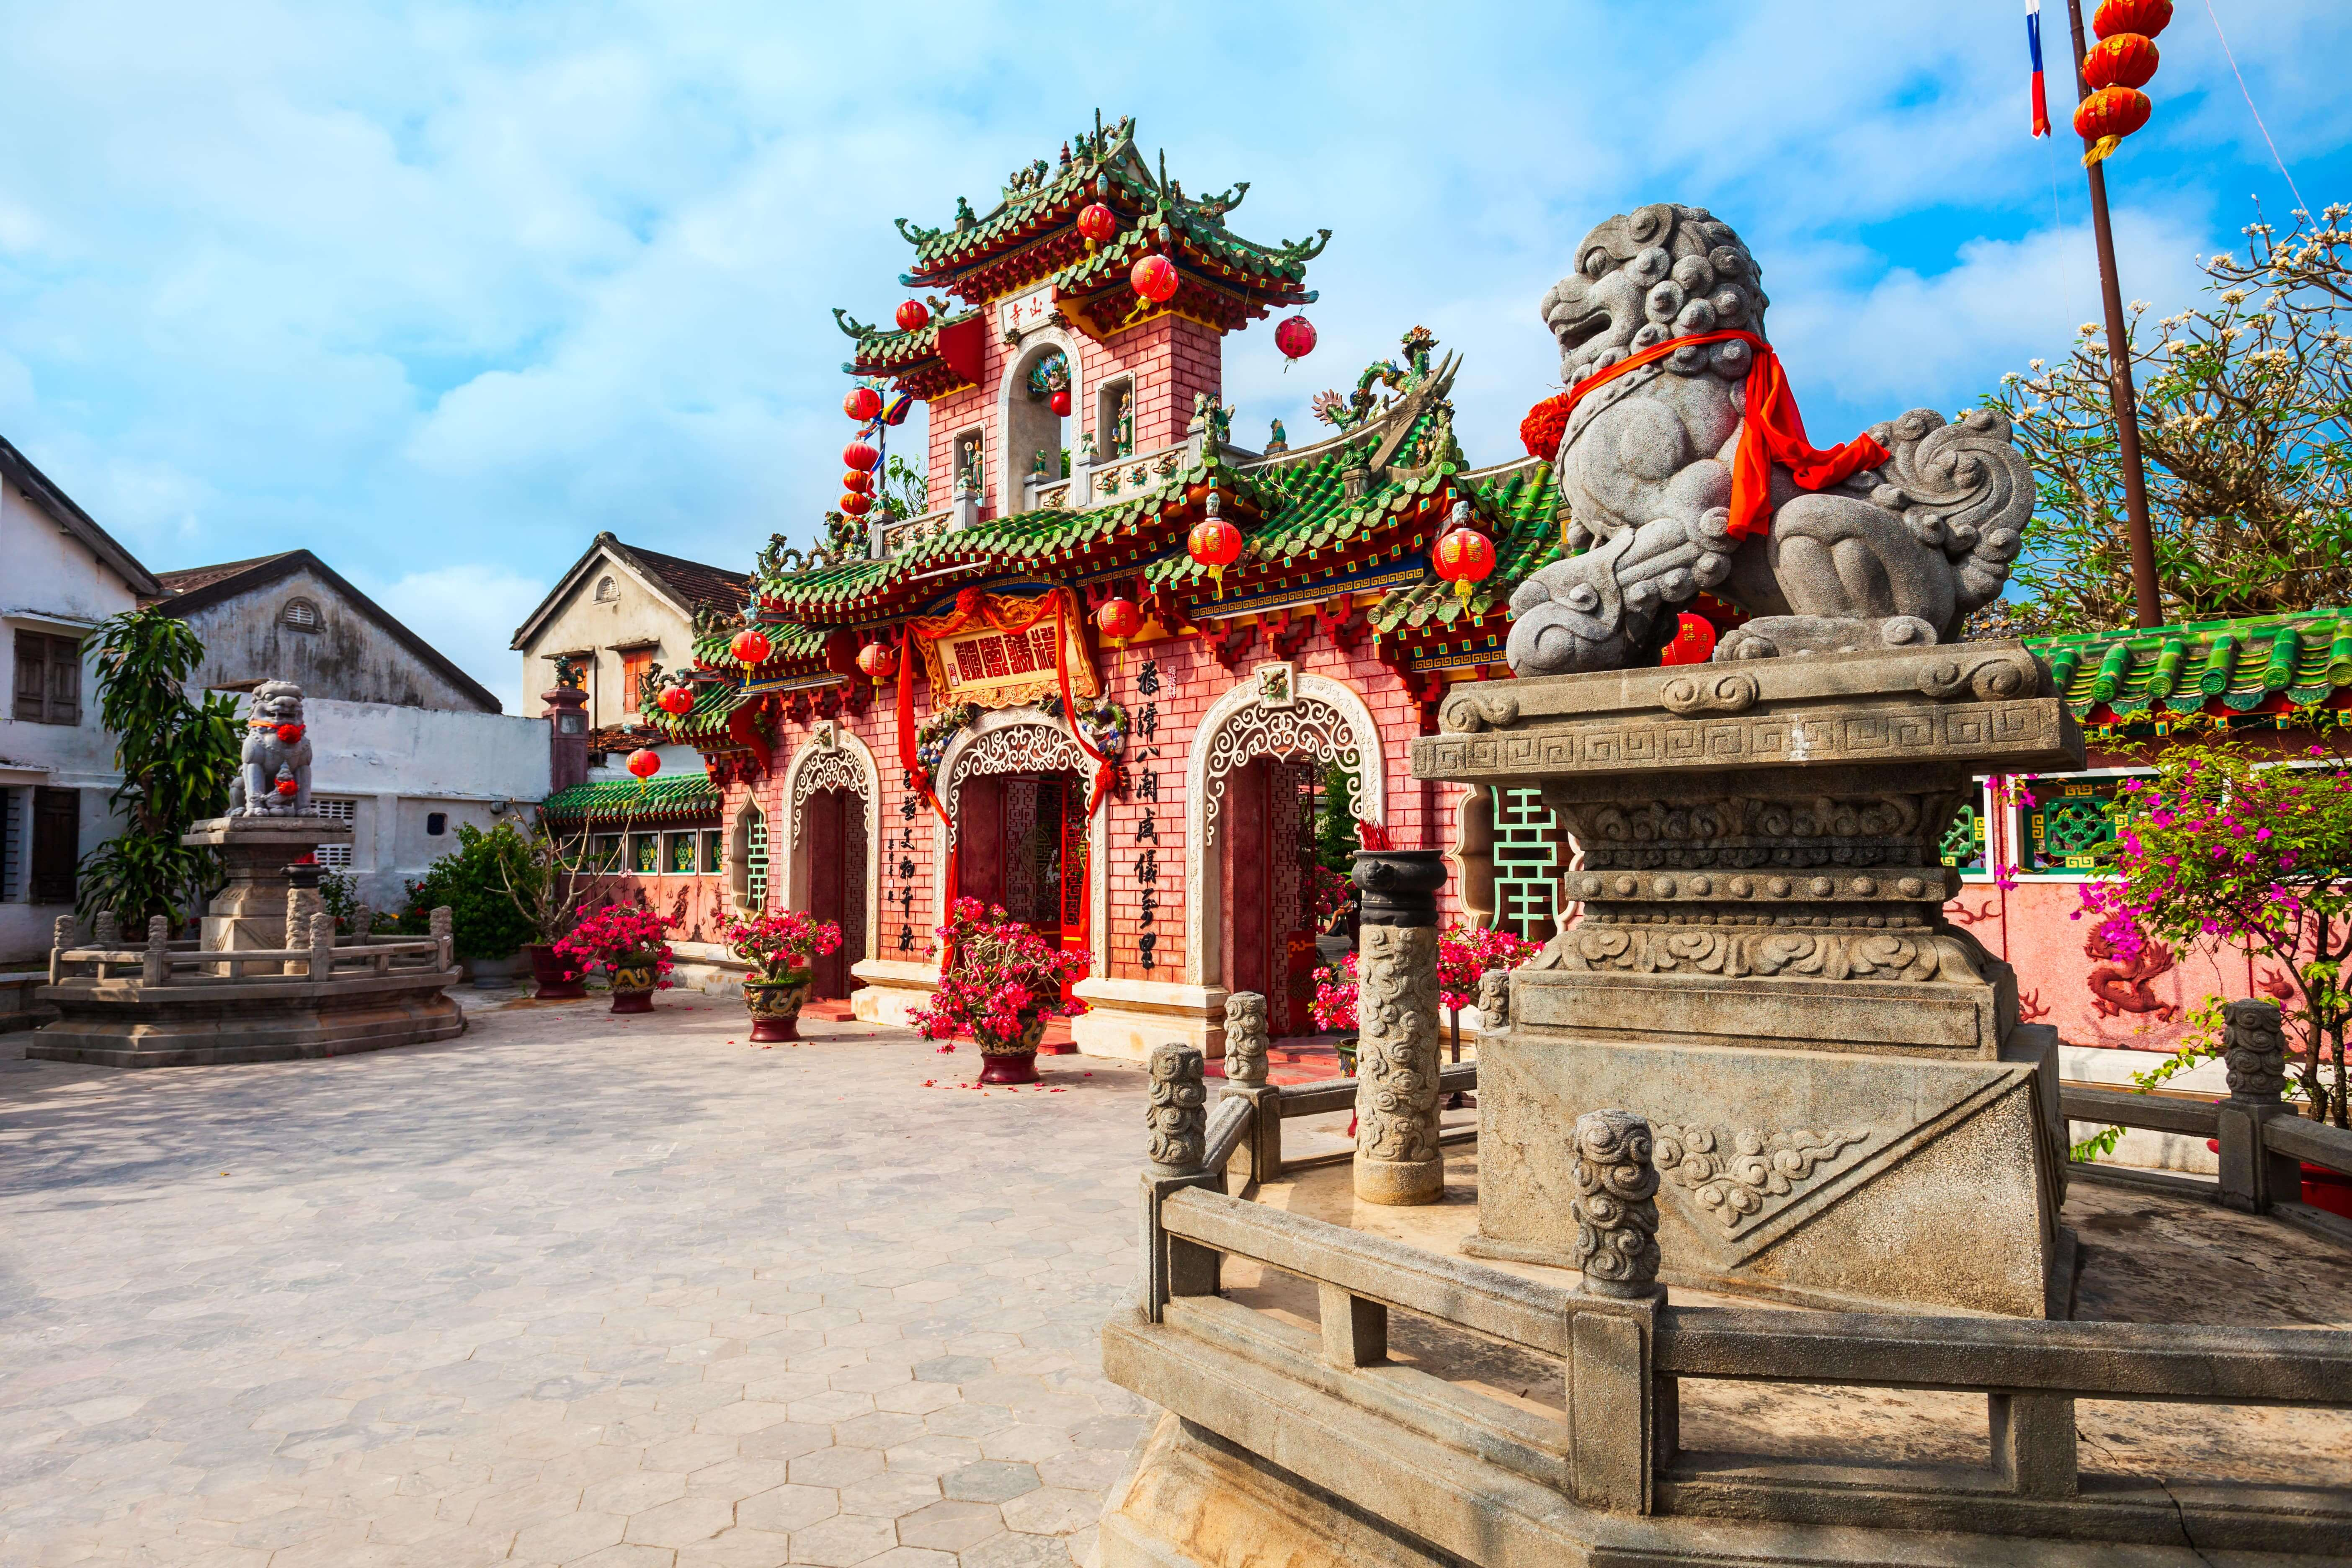 Fujian Assembly Hall in Hoi An